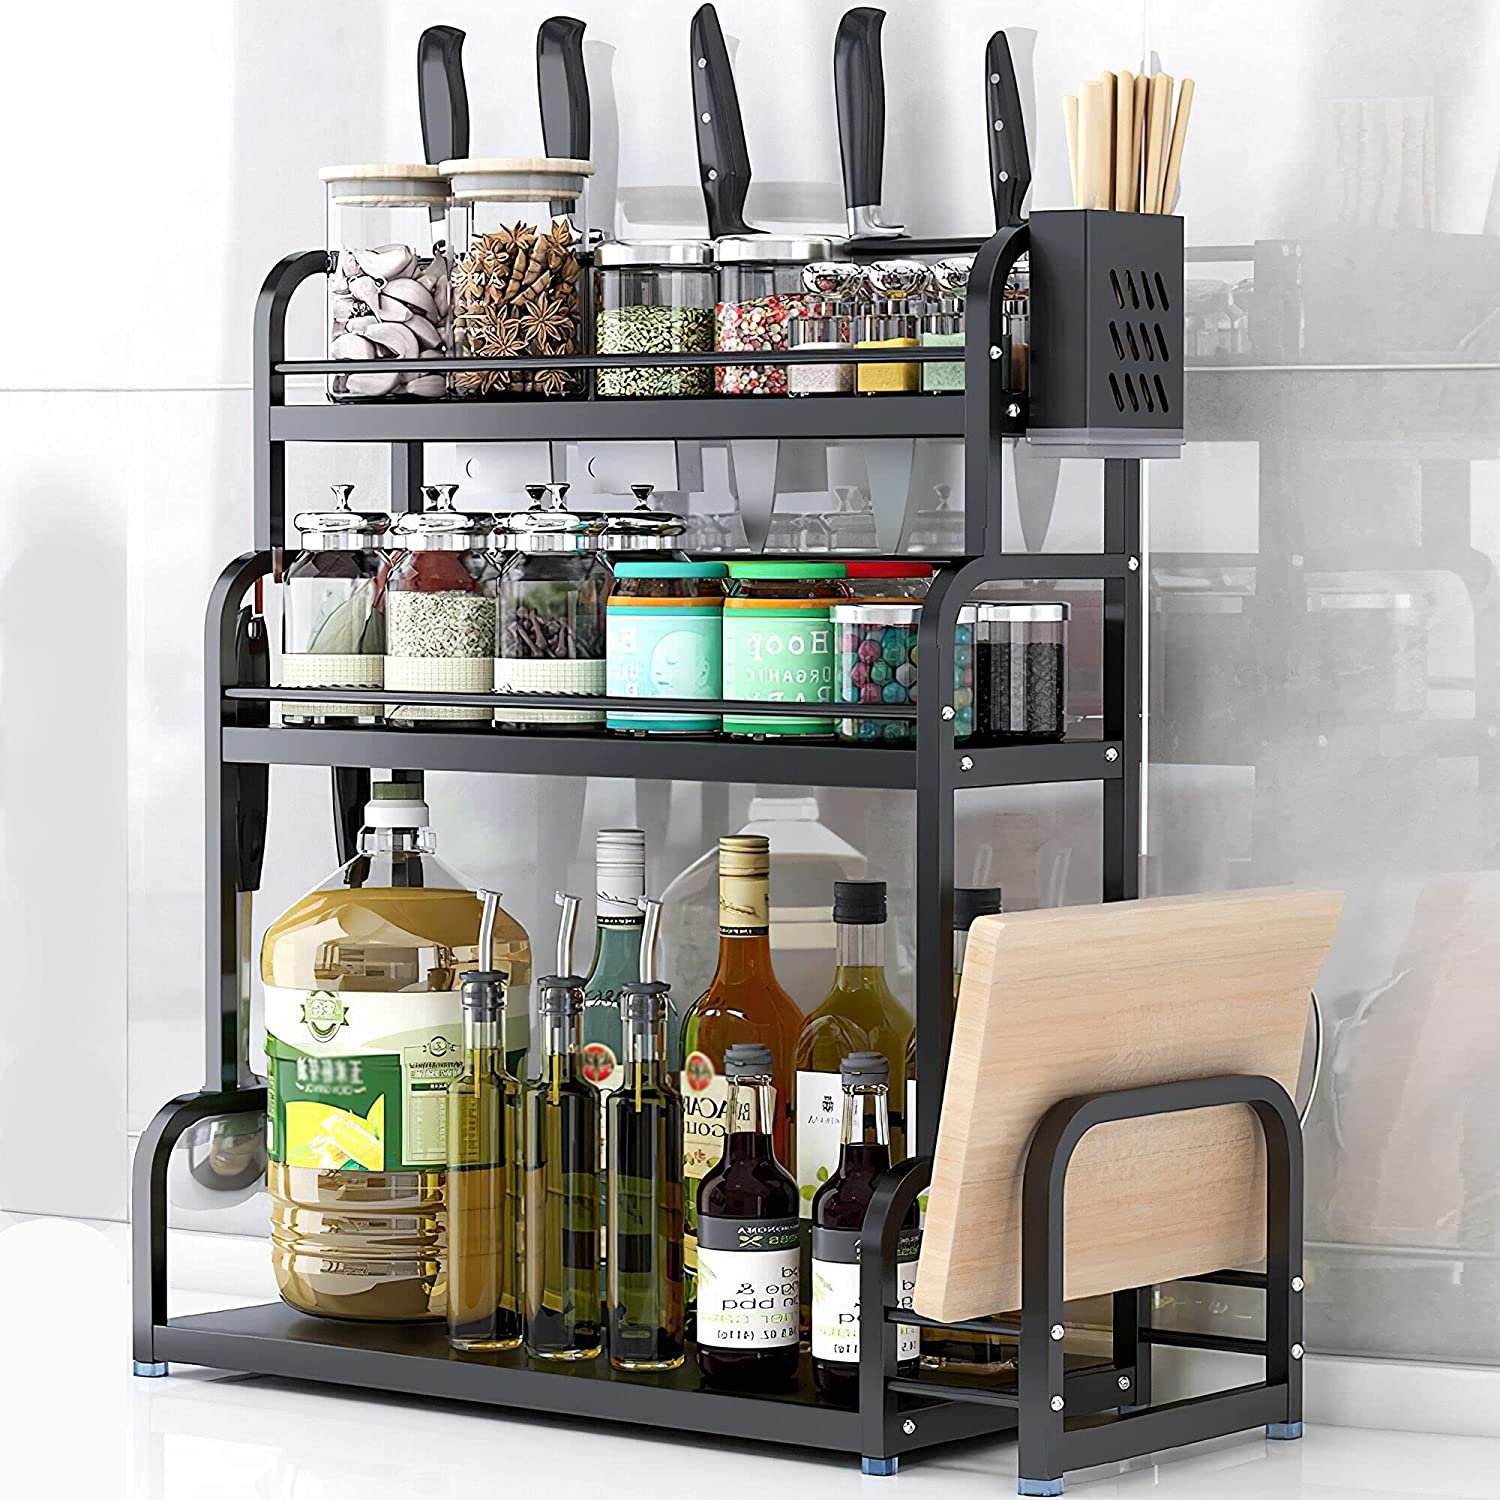 spice rack Very popular! Bargain sale organizer for countertop,Spice large 3-layer